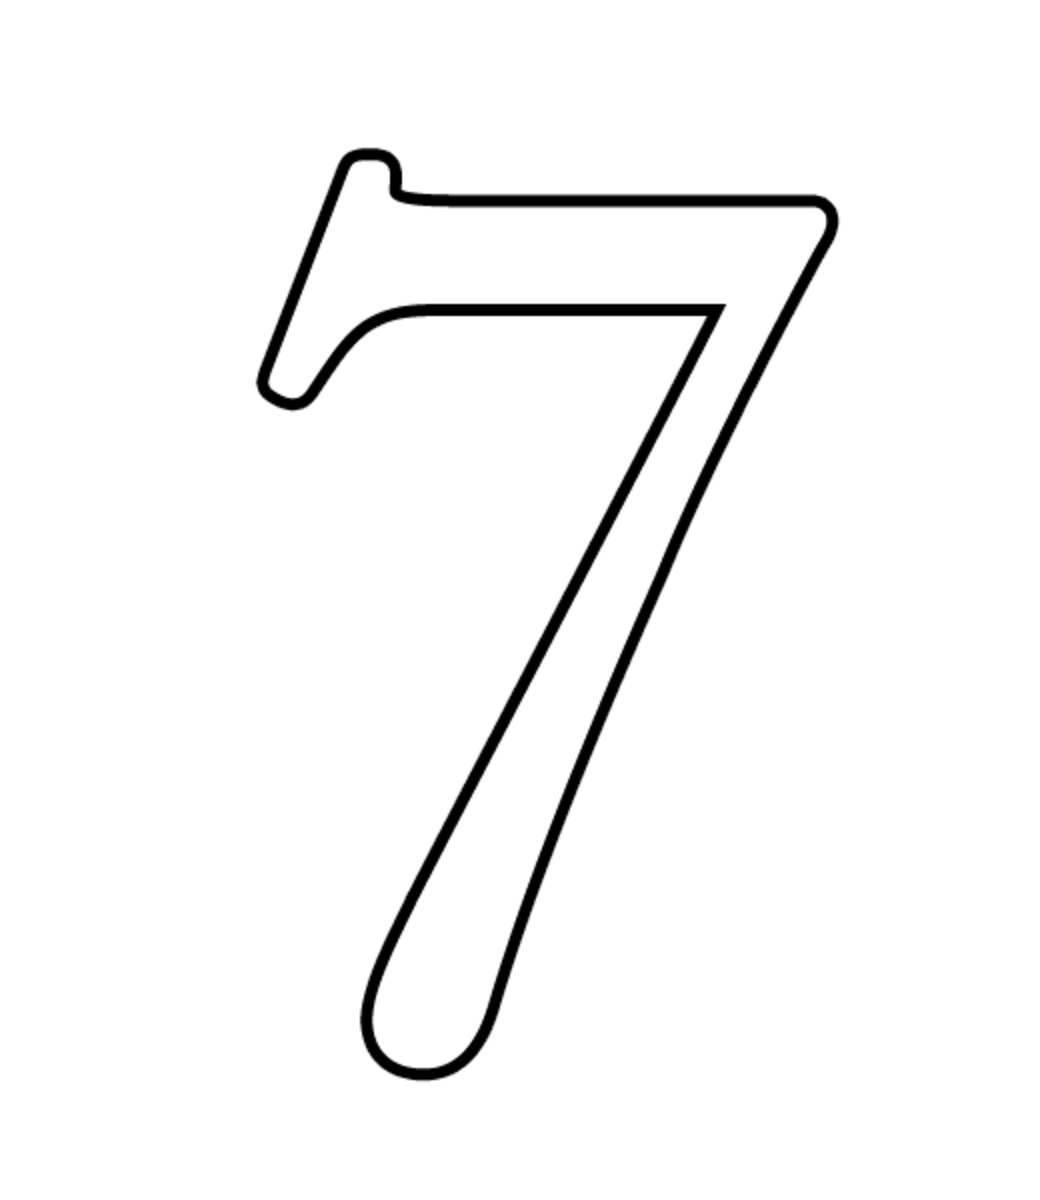 Number seven coloring page.